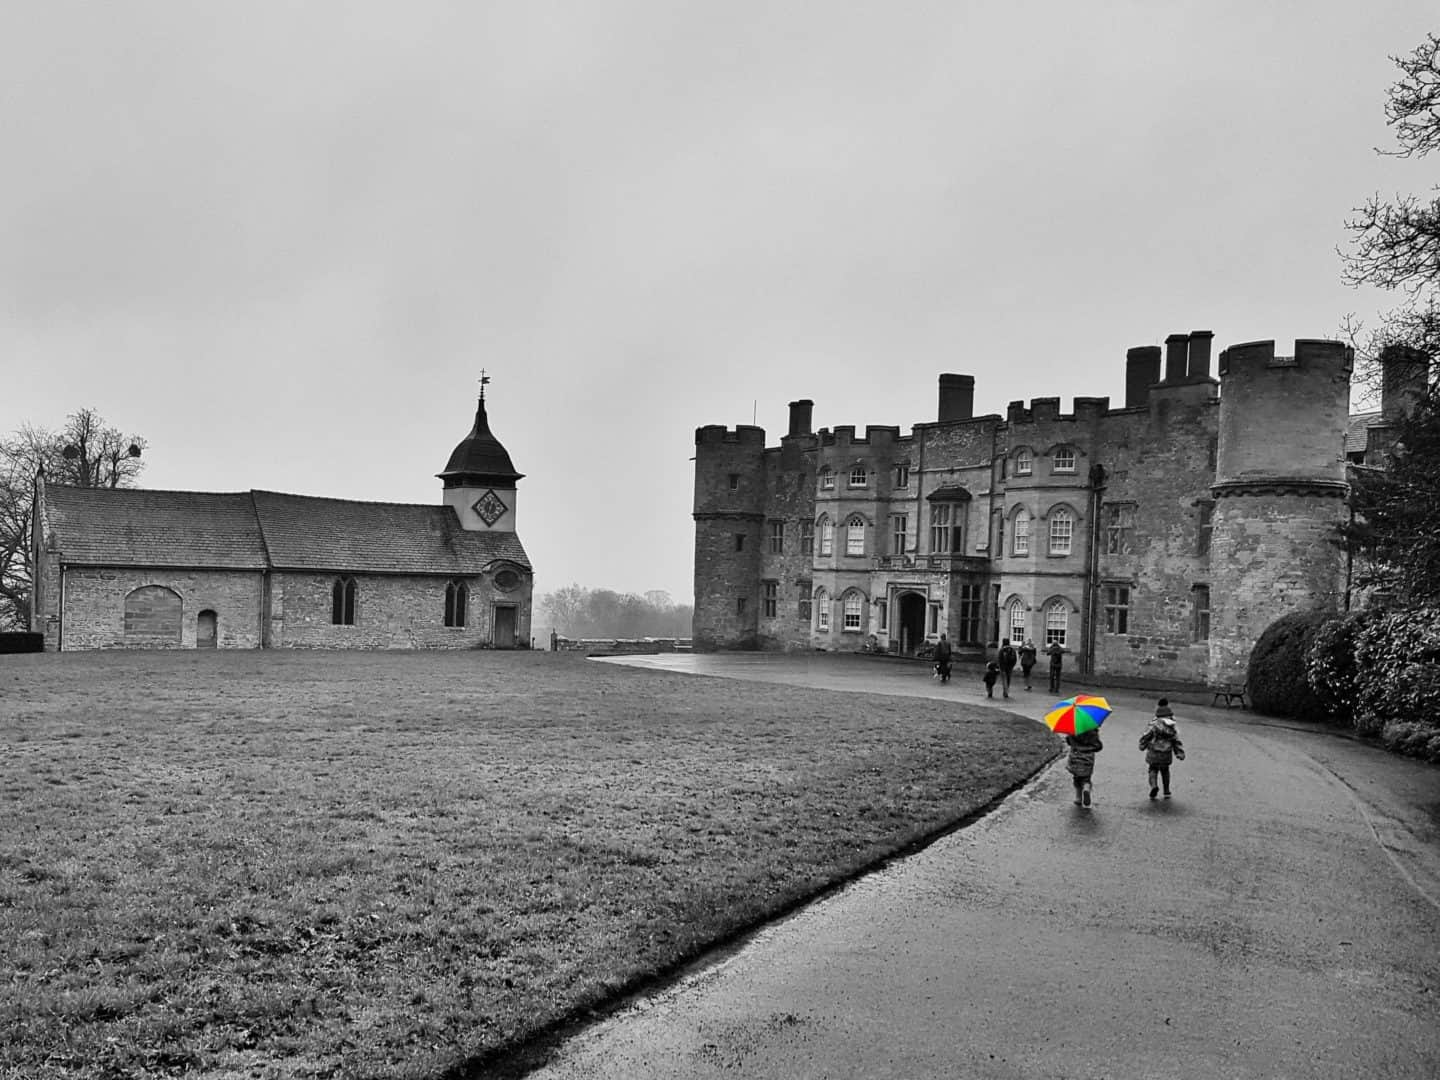 Croft Castle National Trust Herefordshire in black and white with children walking towards it holding rainbow umbrella